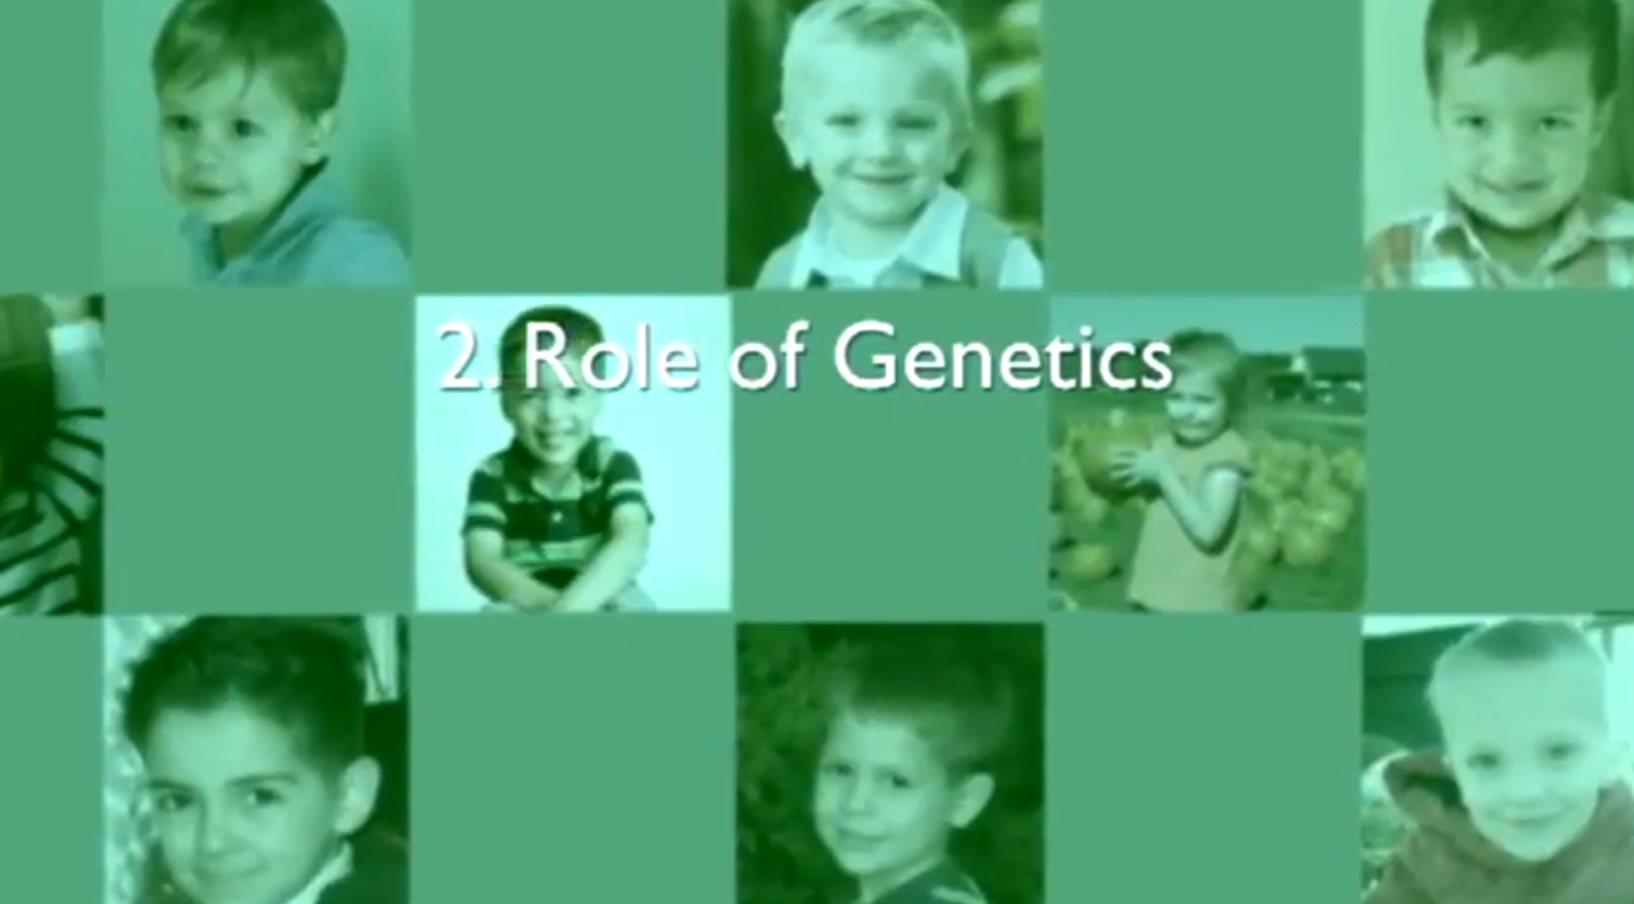 Chapter 2 – Role of Genetics